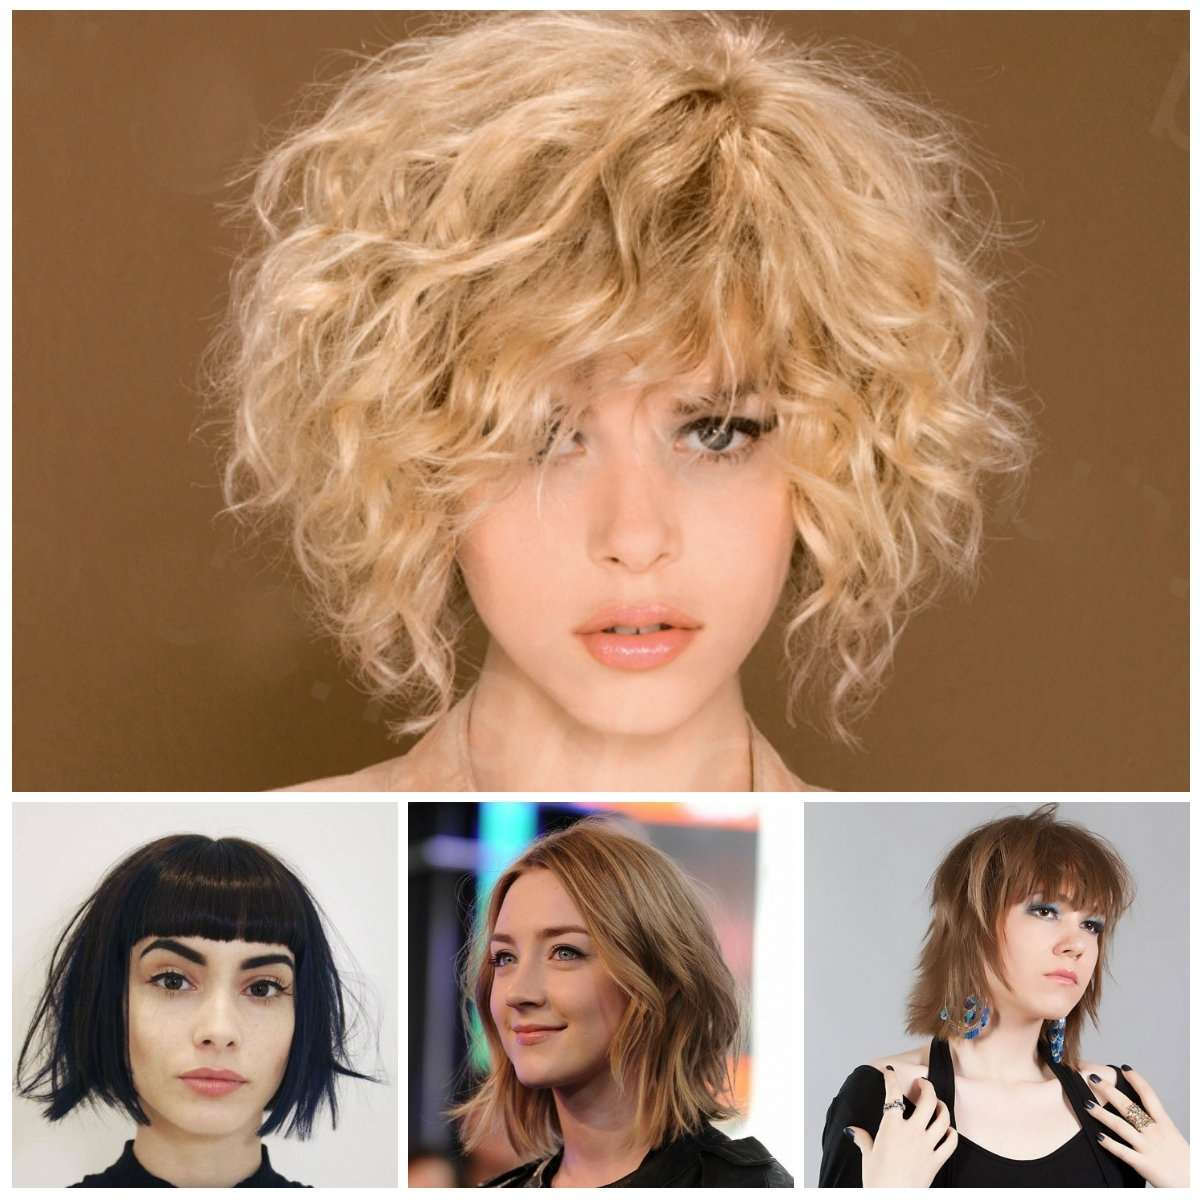 Widely Used Shaggy Crop Hairstyles Pertaining To Shaggy Bob Haircut Ideas – New Hairstyles 2017 For Long, Short And (View 3 of 15)